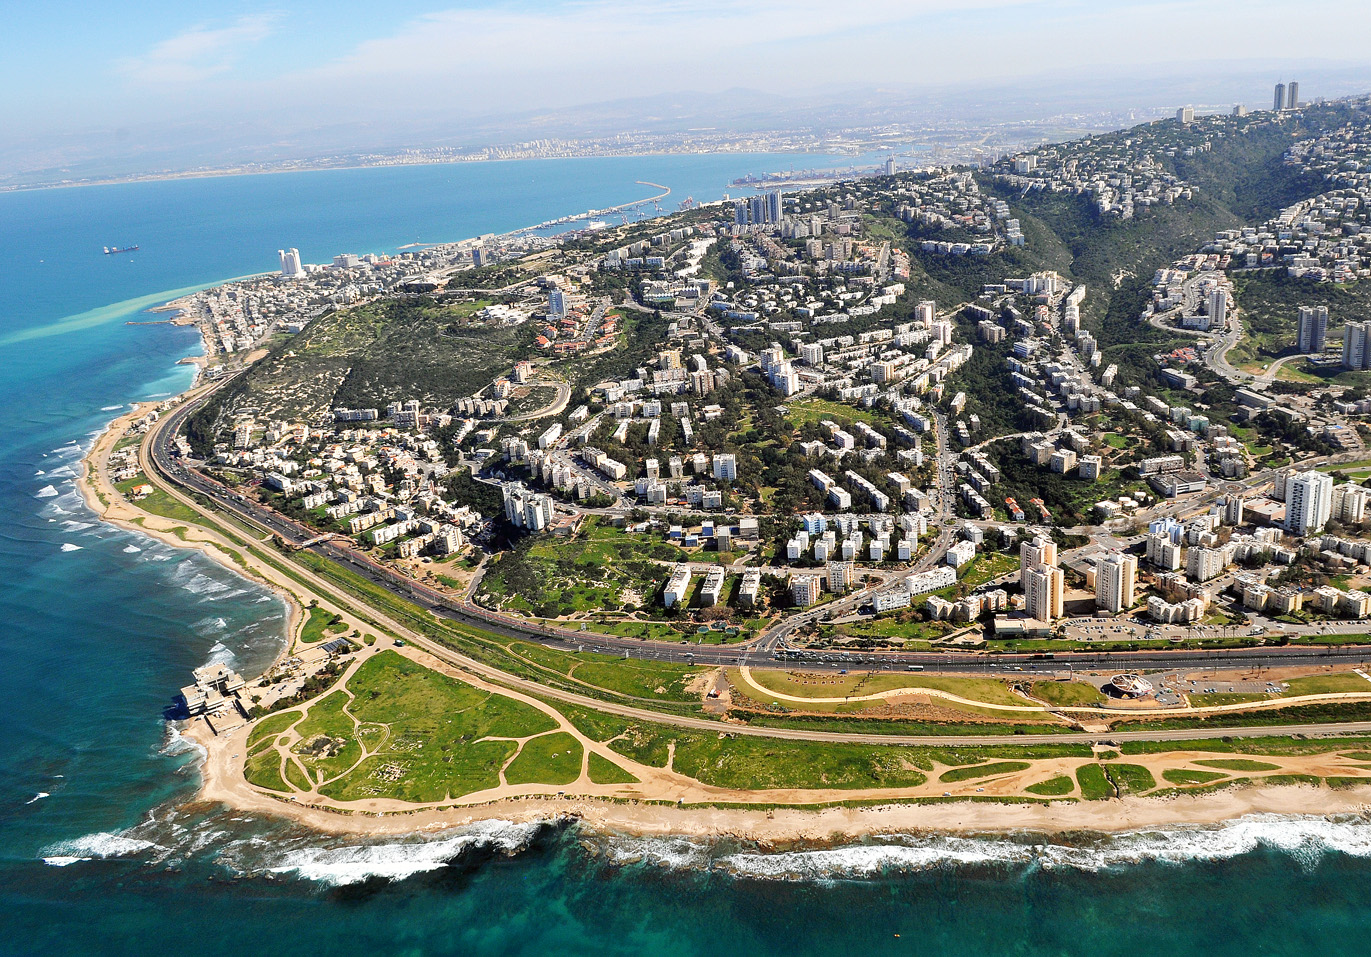 Western_Haifa_from_the_air.jpg